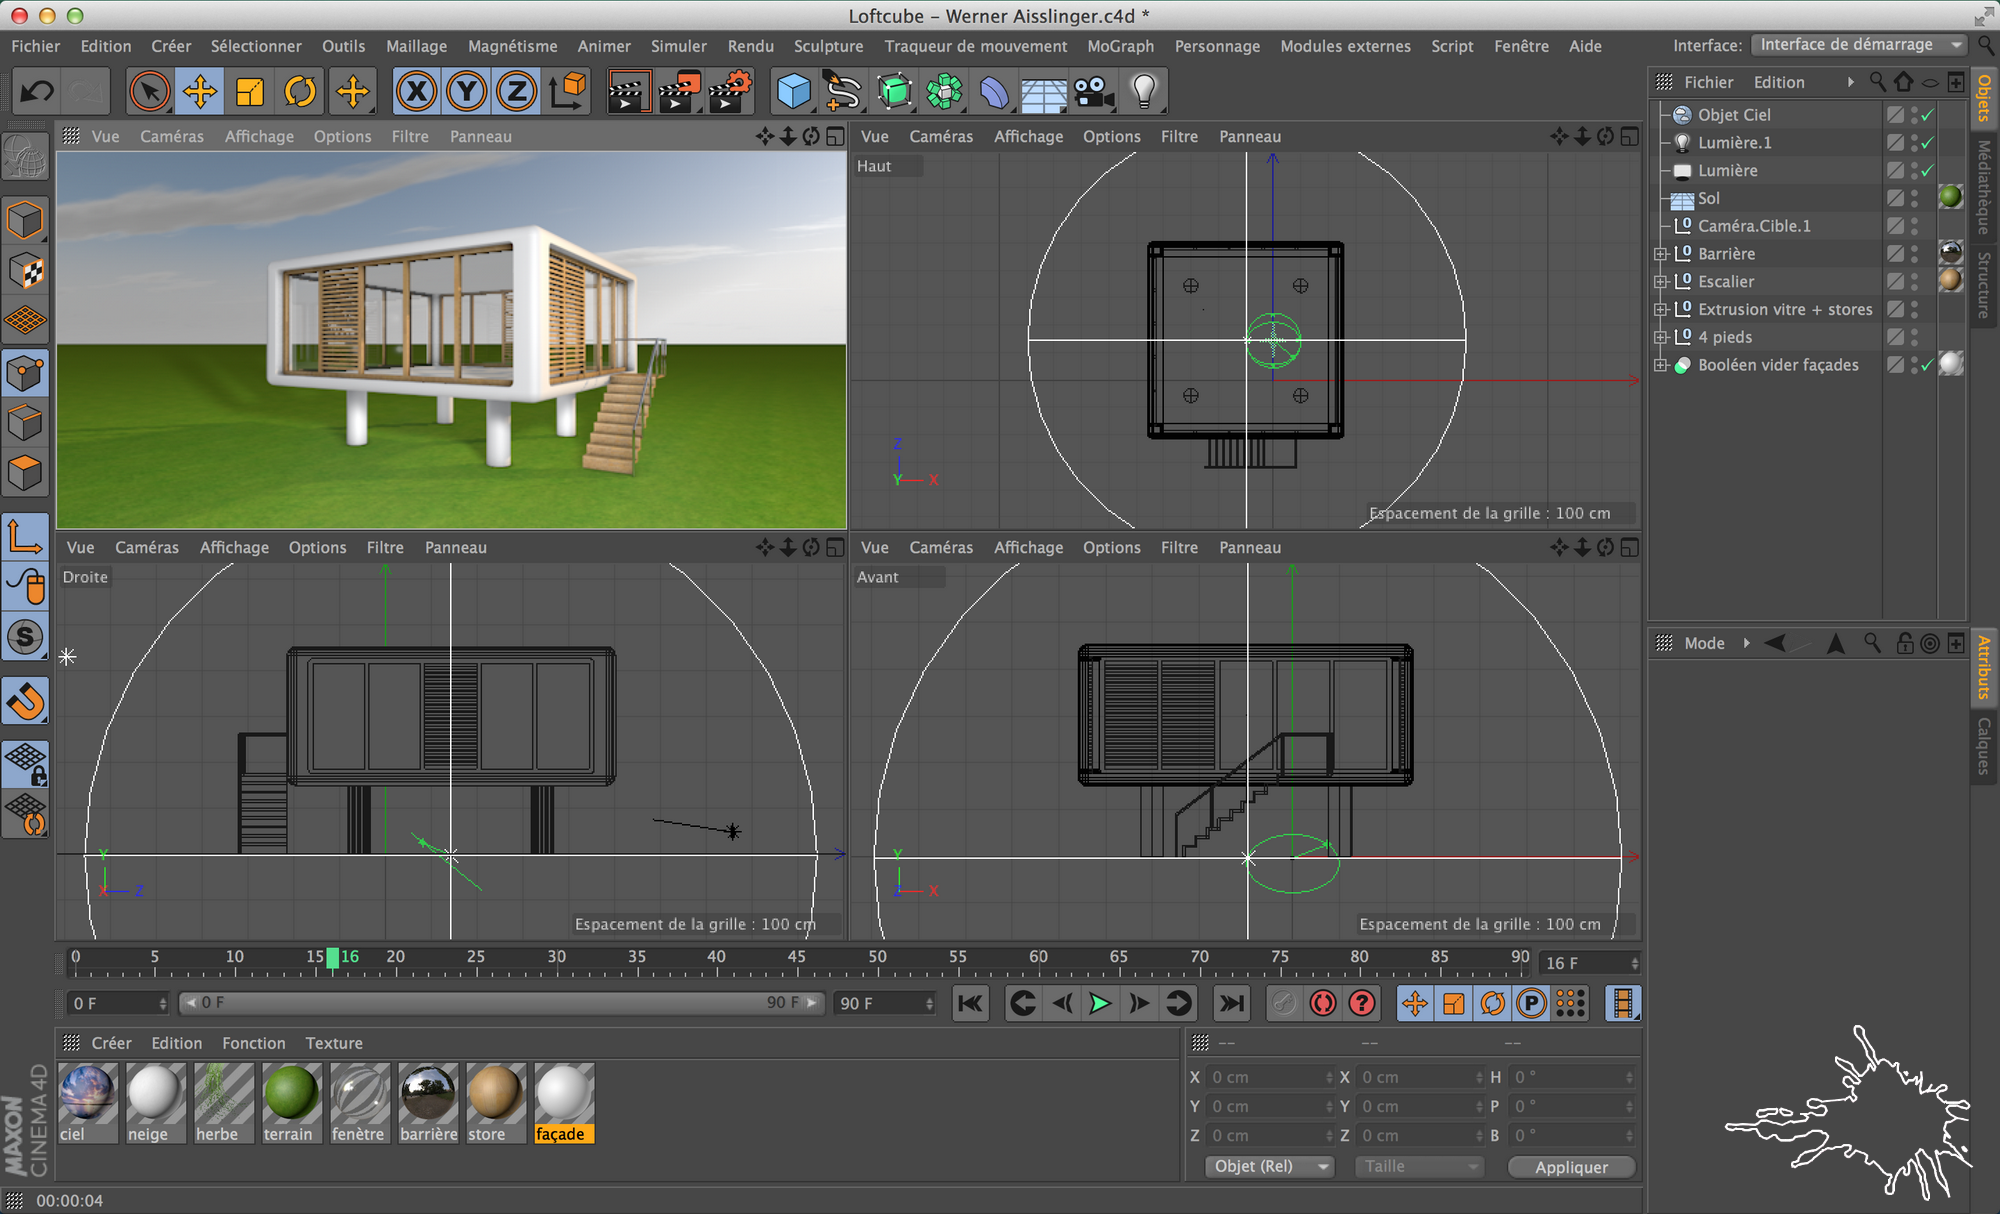 cinema 4D loftcube blog